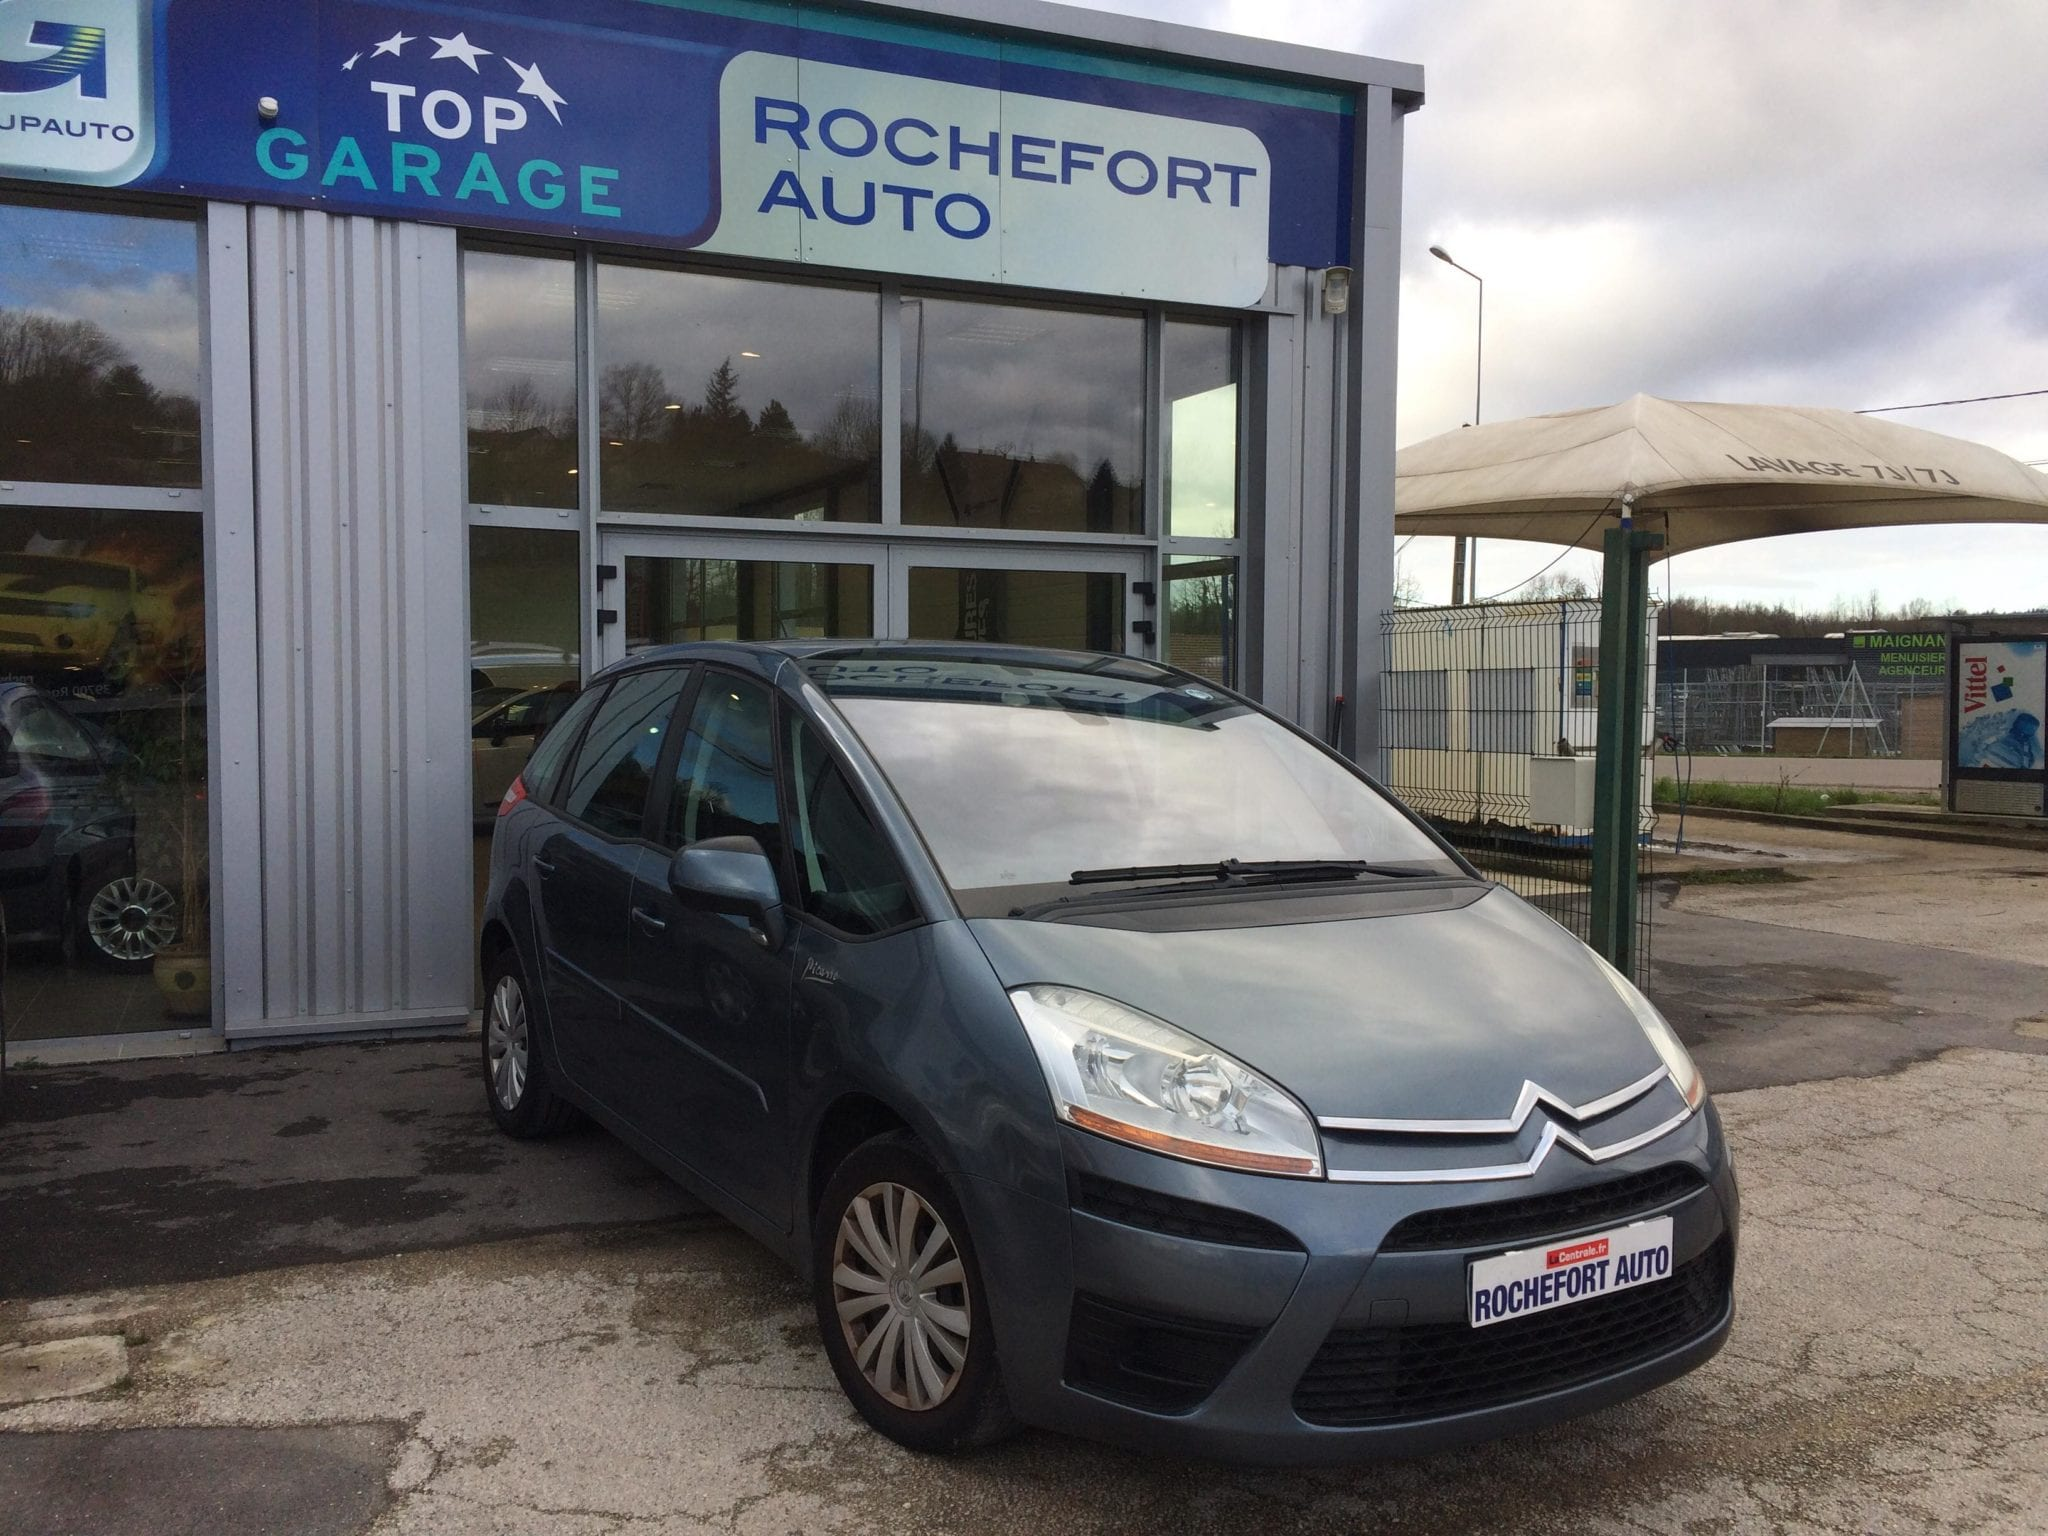 CITROEN C4 PICASSO 1.6 HDI 110 PACK AMBIANCE - Image 2